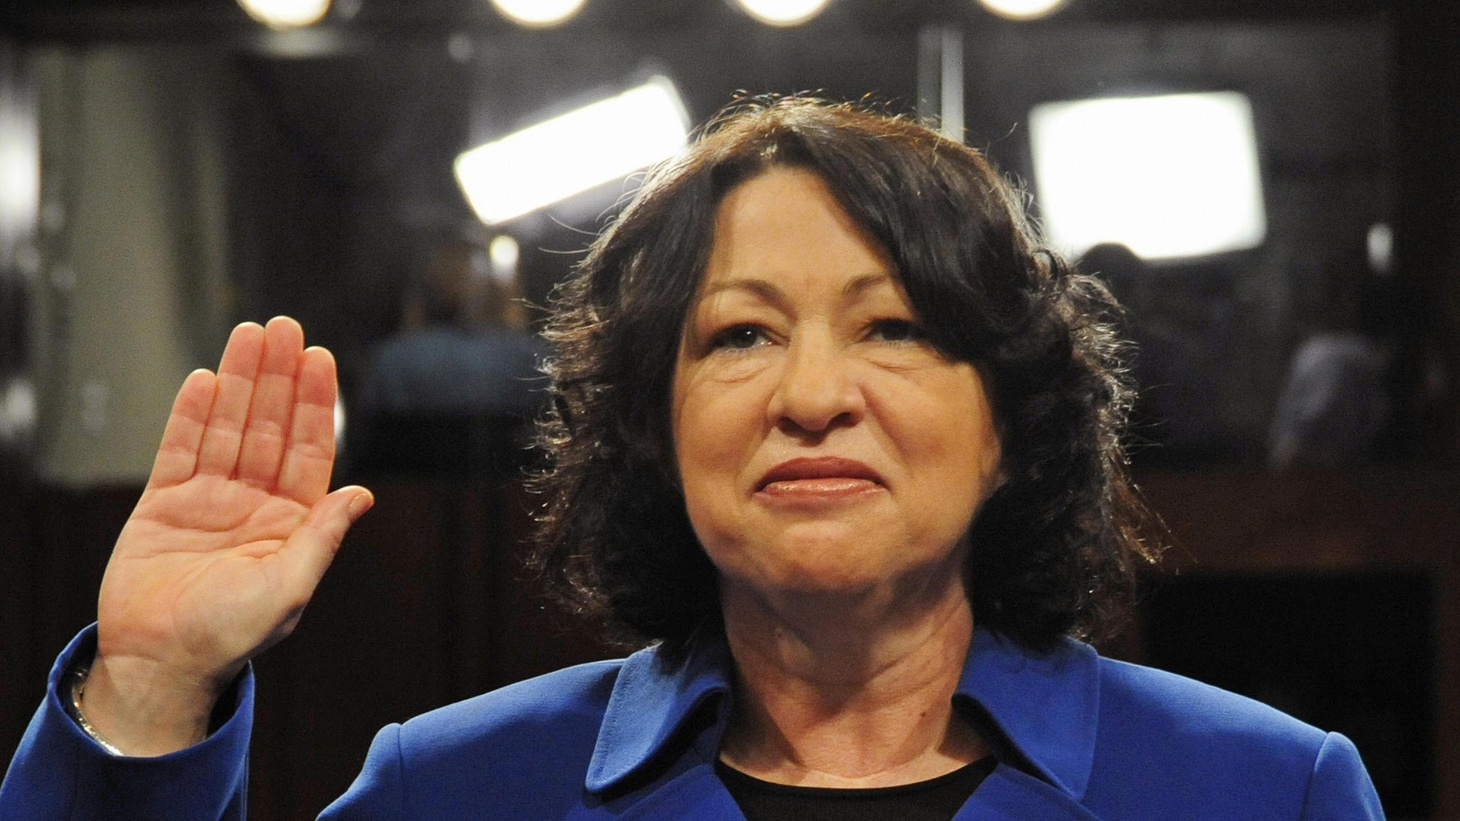 Is Sotomayor a shoe-in? The battle for healthcare reform turns critical. Plus, Goldman Sachs and JP Morgan earn millions. Is that good for the country? (With Arianna Huffington and Tony Blankley away, we welcome two new guest hosts, John Henke and Mike Murphy.)